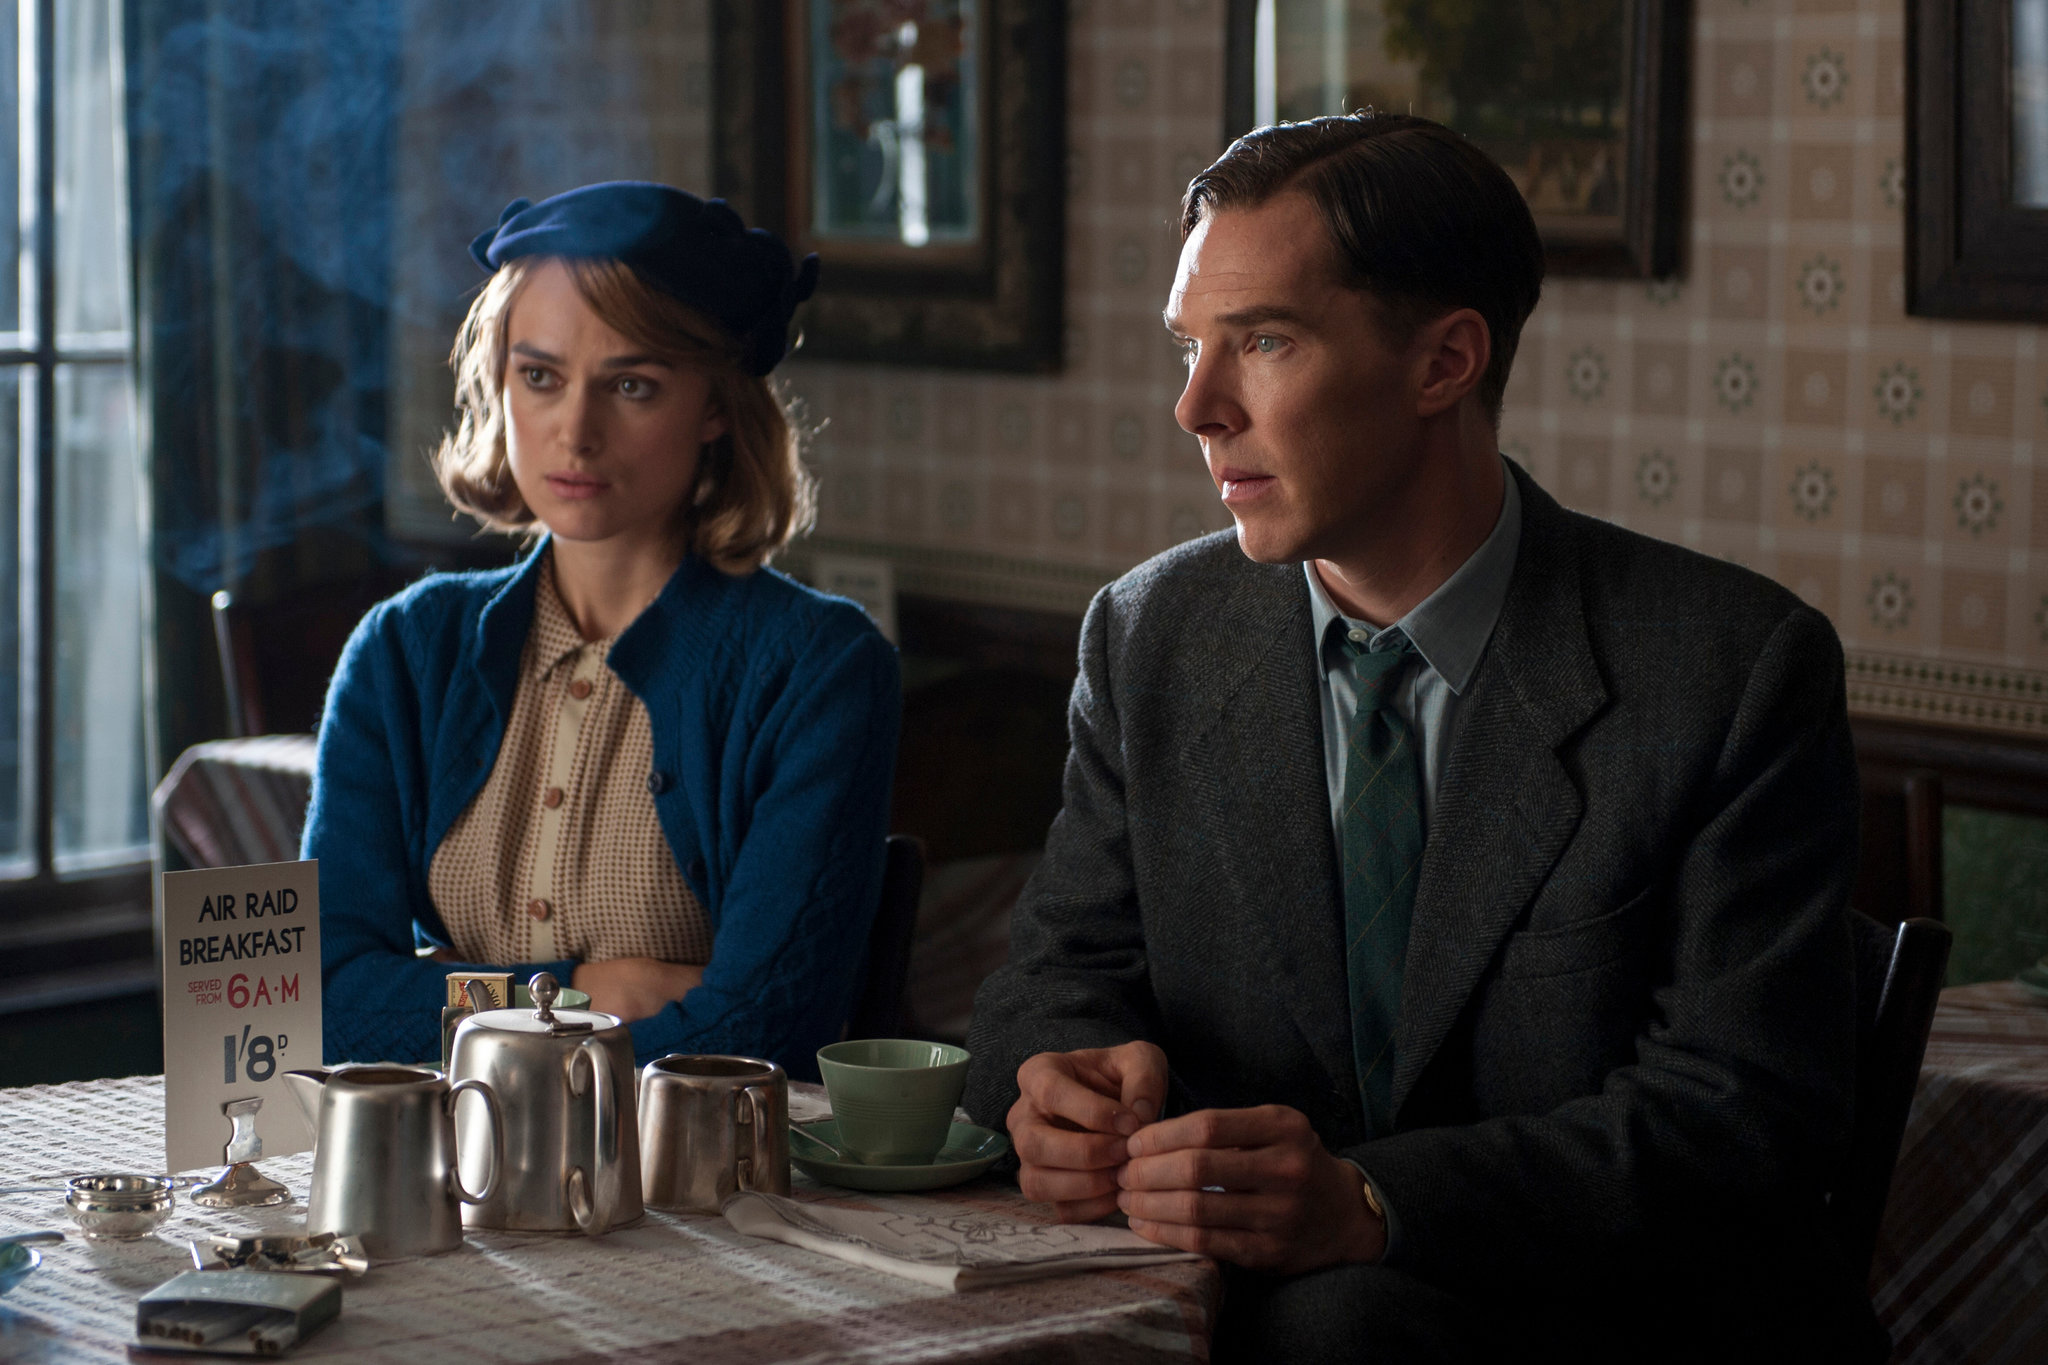 Keira-Knightley-Benedict-Cumberbatch-The Imitation Game-DM